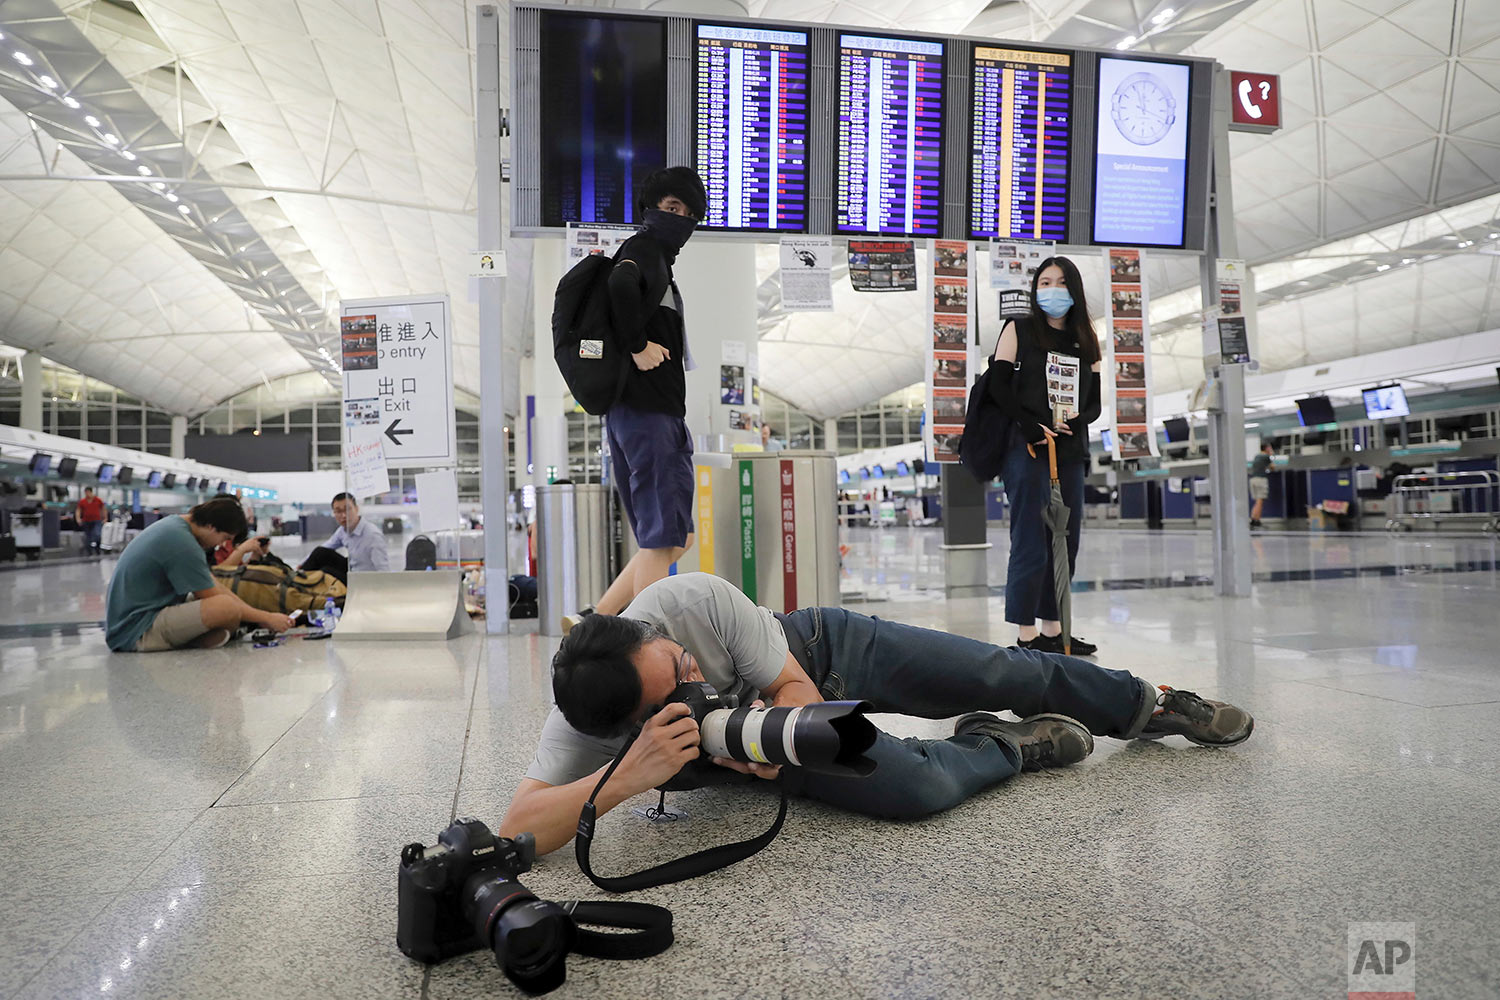 AP photographer Vincent Thian takes photos of stranded travelers after authorities canceled all flights at the Hong Kong International Airport in Hong Kong, Aug. 12, 2019. (AP Photo/Kin Cheung)